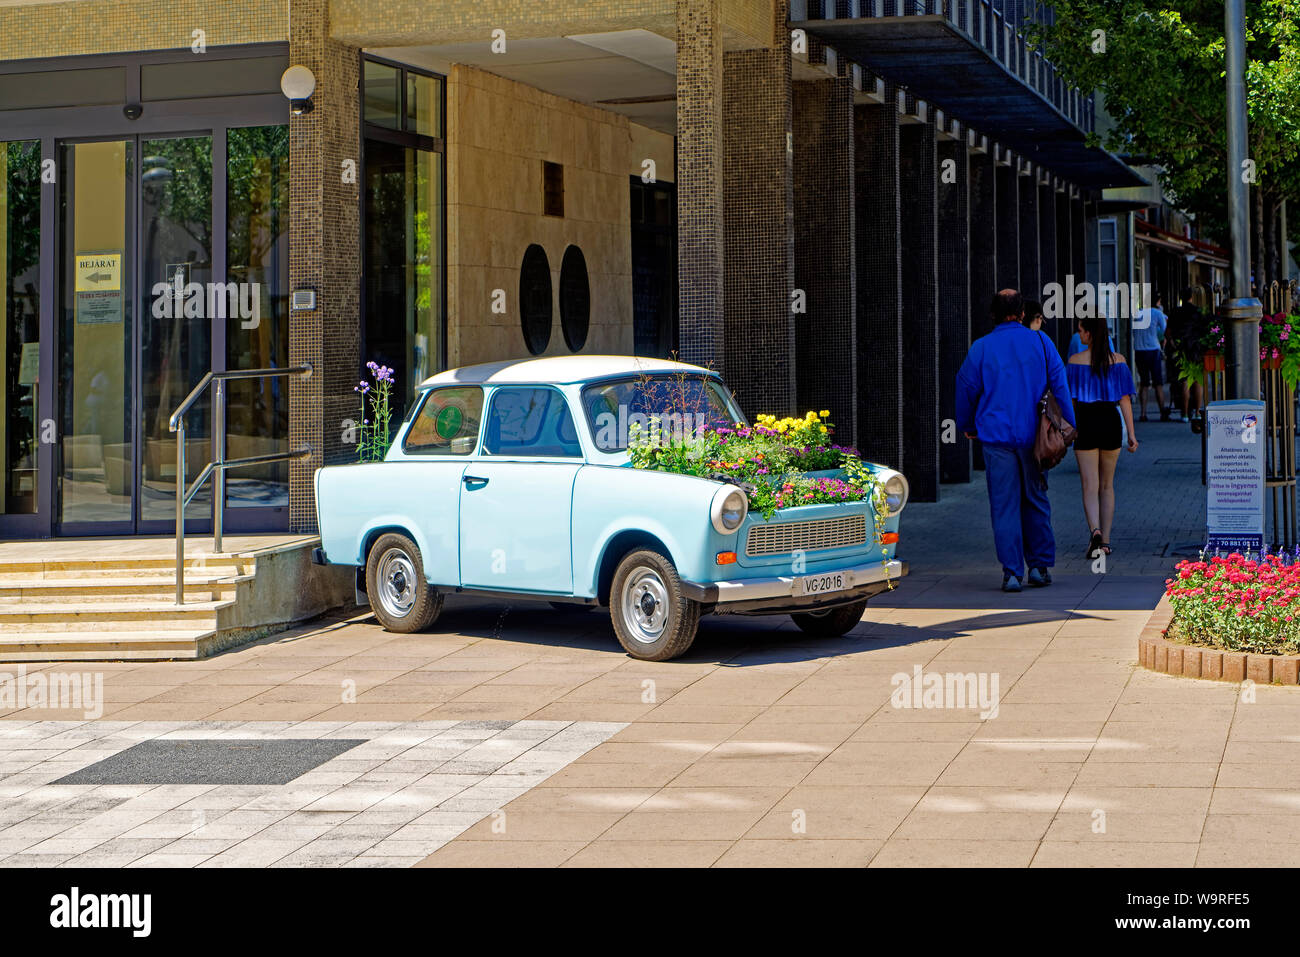 Auto Trabant Blumenkasten Dekoration Stock Photo Alamy